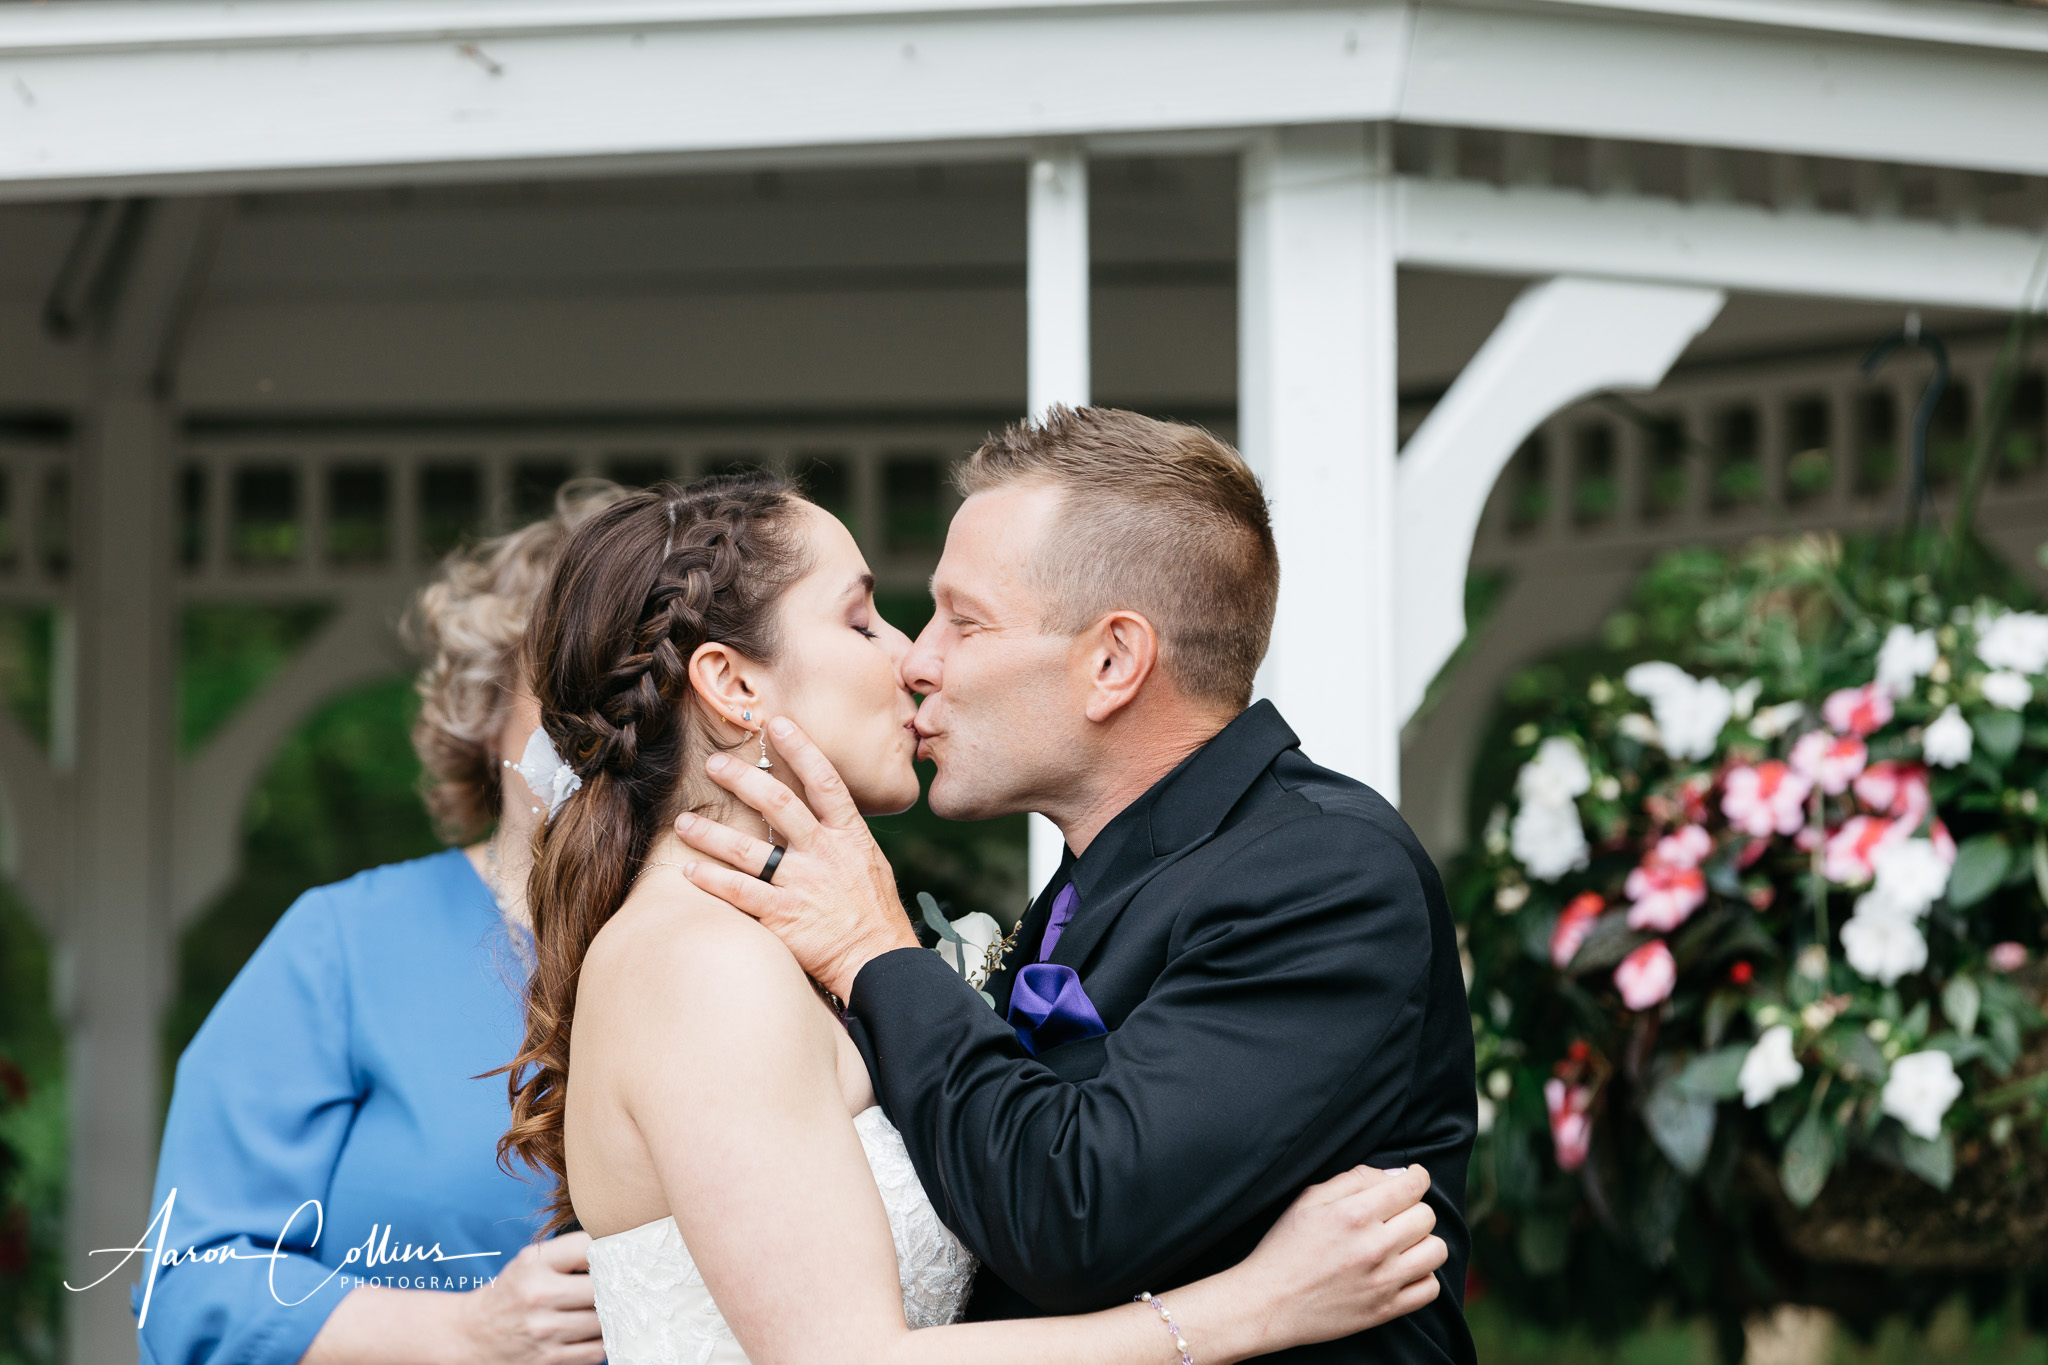 You may kiss the bride! First kiss.